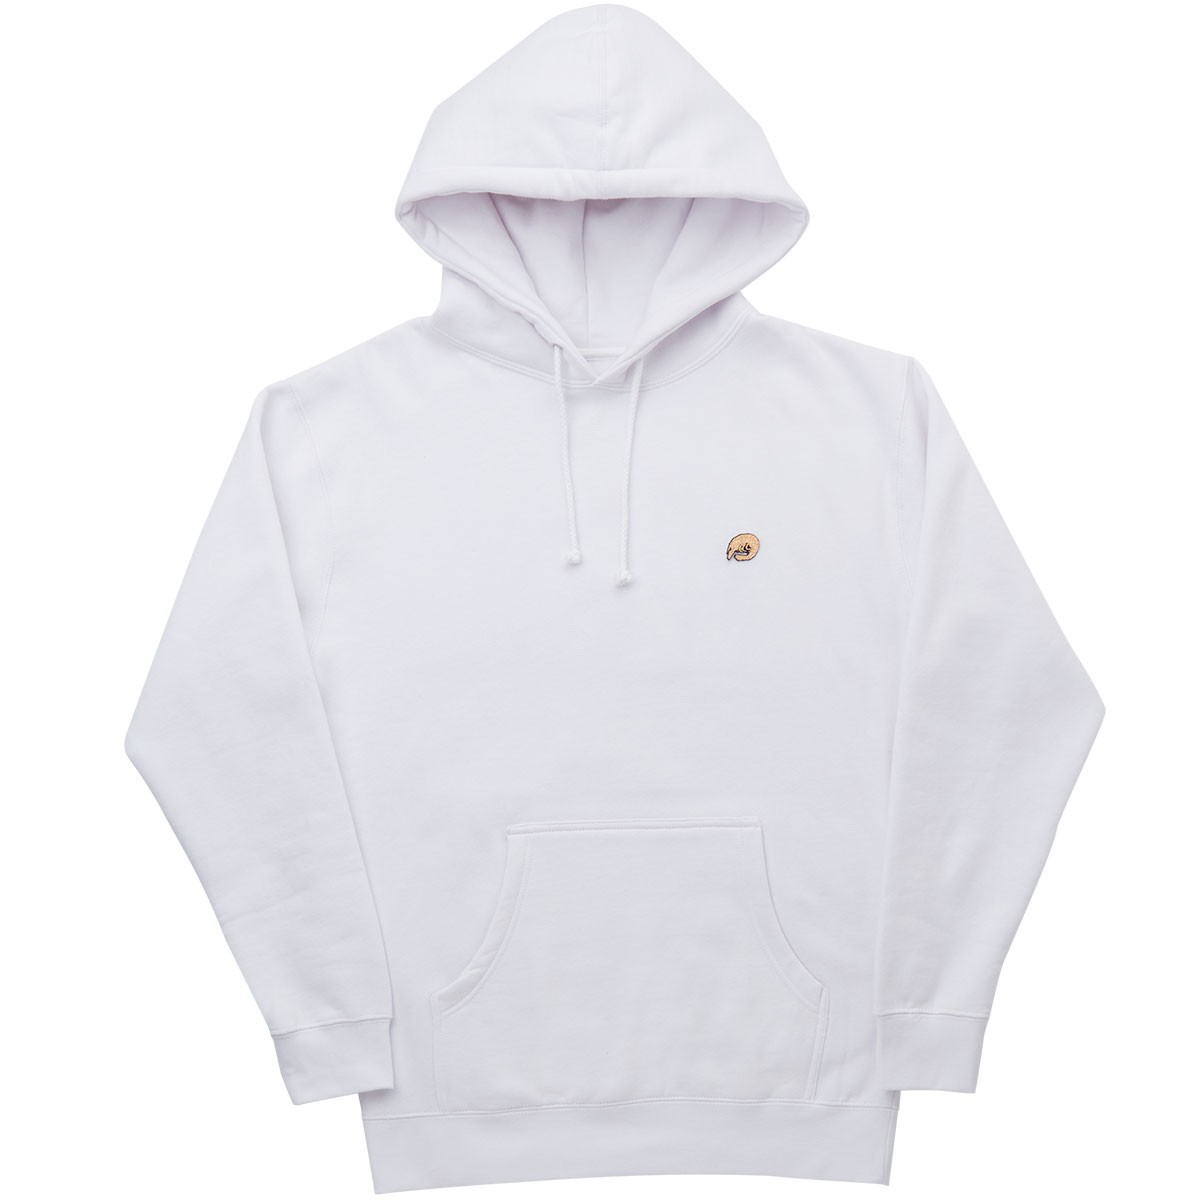 Staple Pullover Hoodie - White